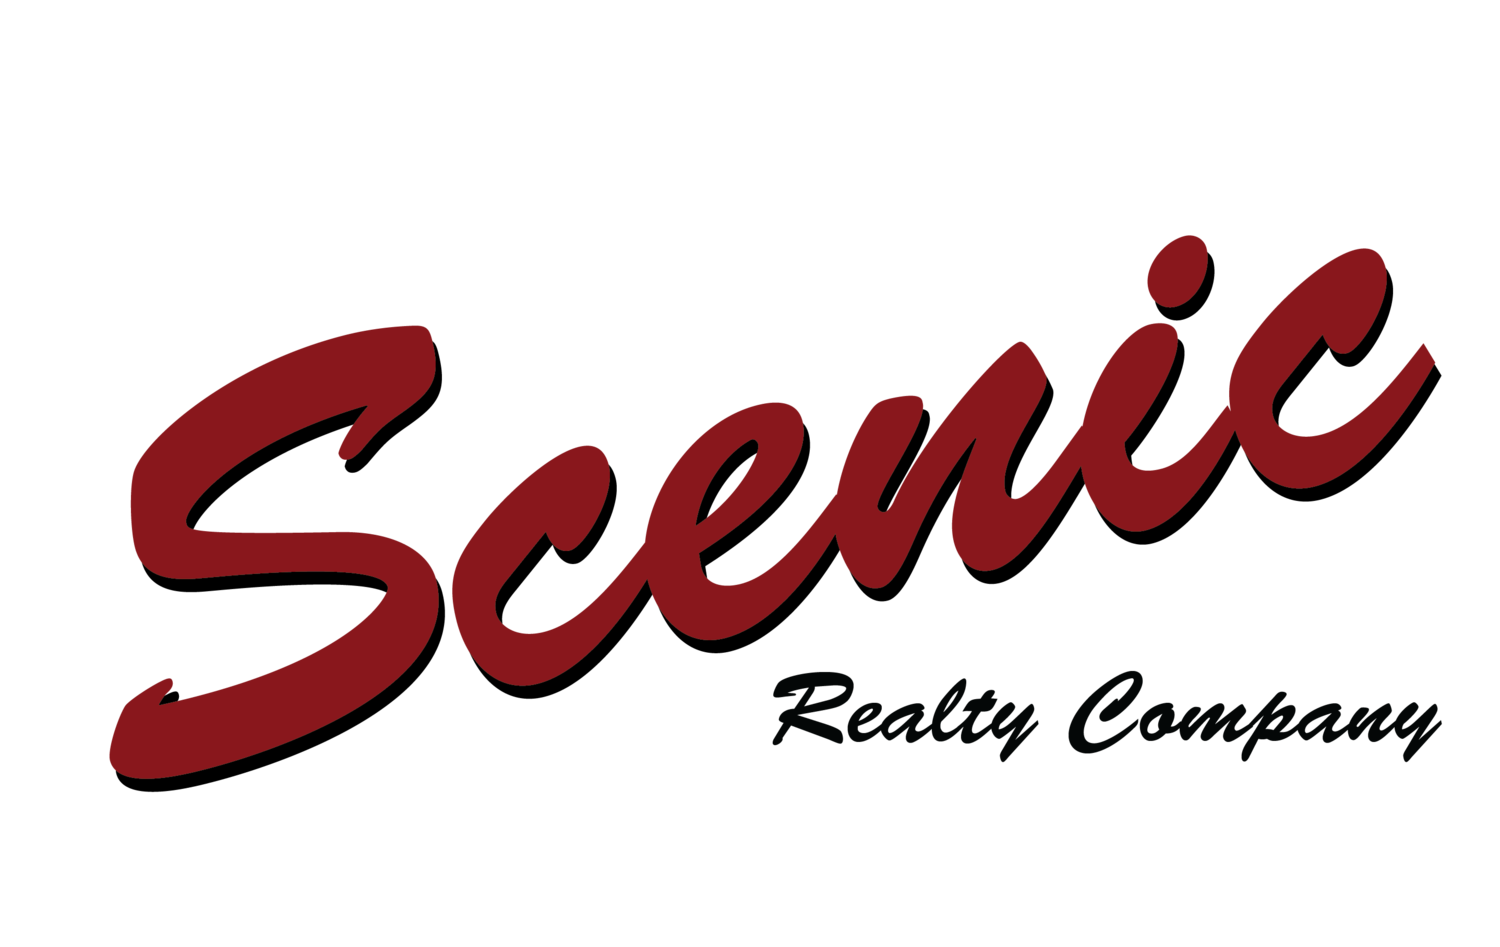 Scenic Realty Co.